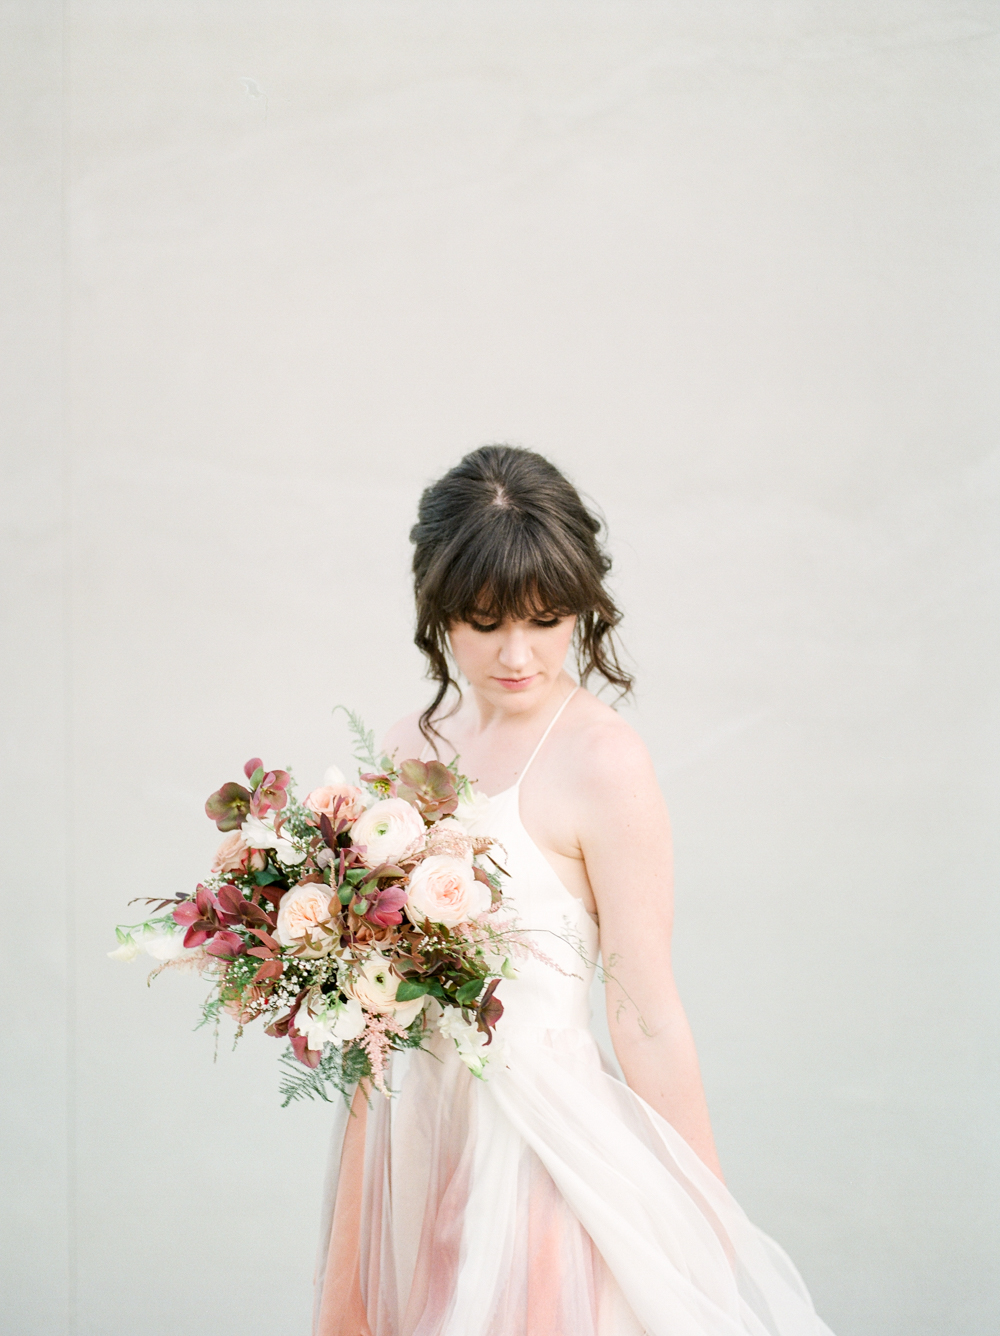 Christine Gosch - destination film photographer - houston wedding photographer - fine art film photographer - elopement photographer - destination wedding - understated wedding - simple beautiful wedding photography-82.jpg